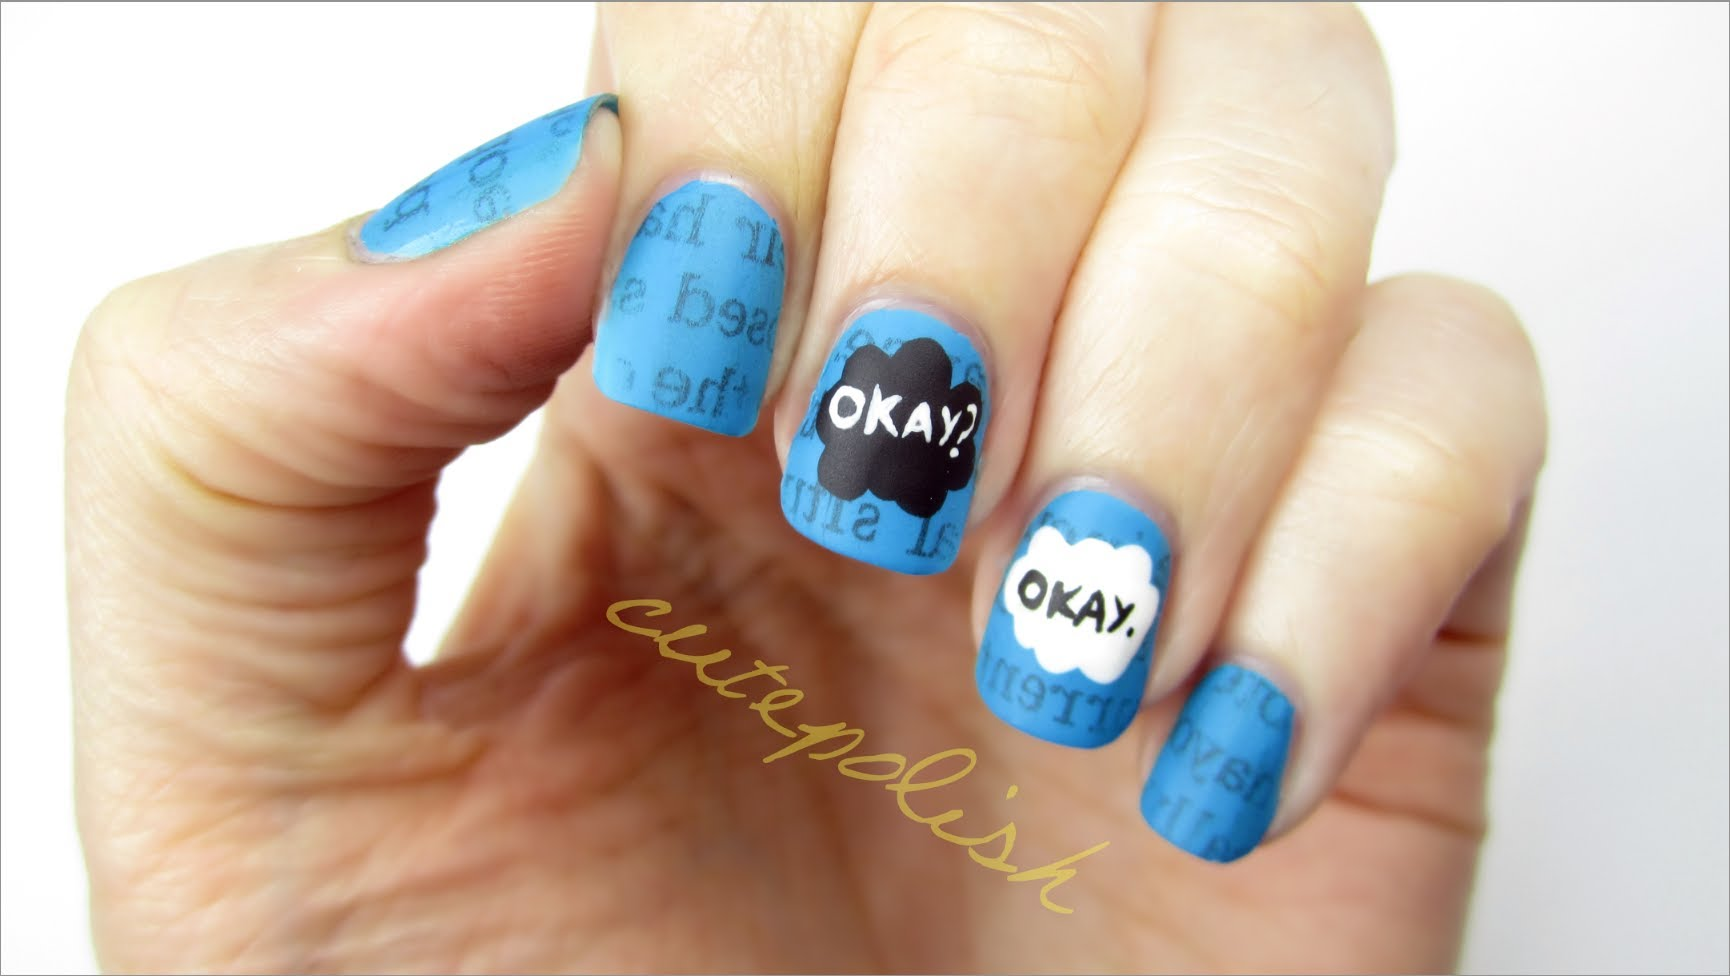 The Fault In Our Stars Nail Art I Could Never Do This But It S So Cool